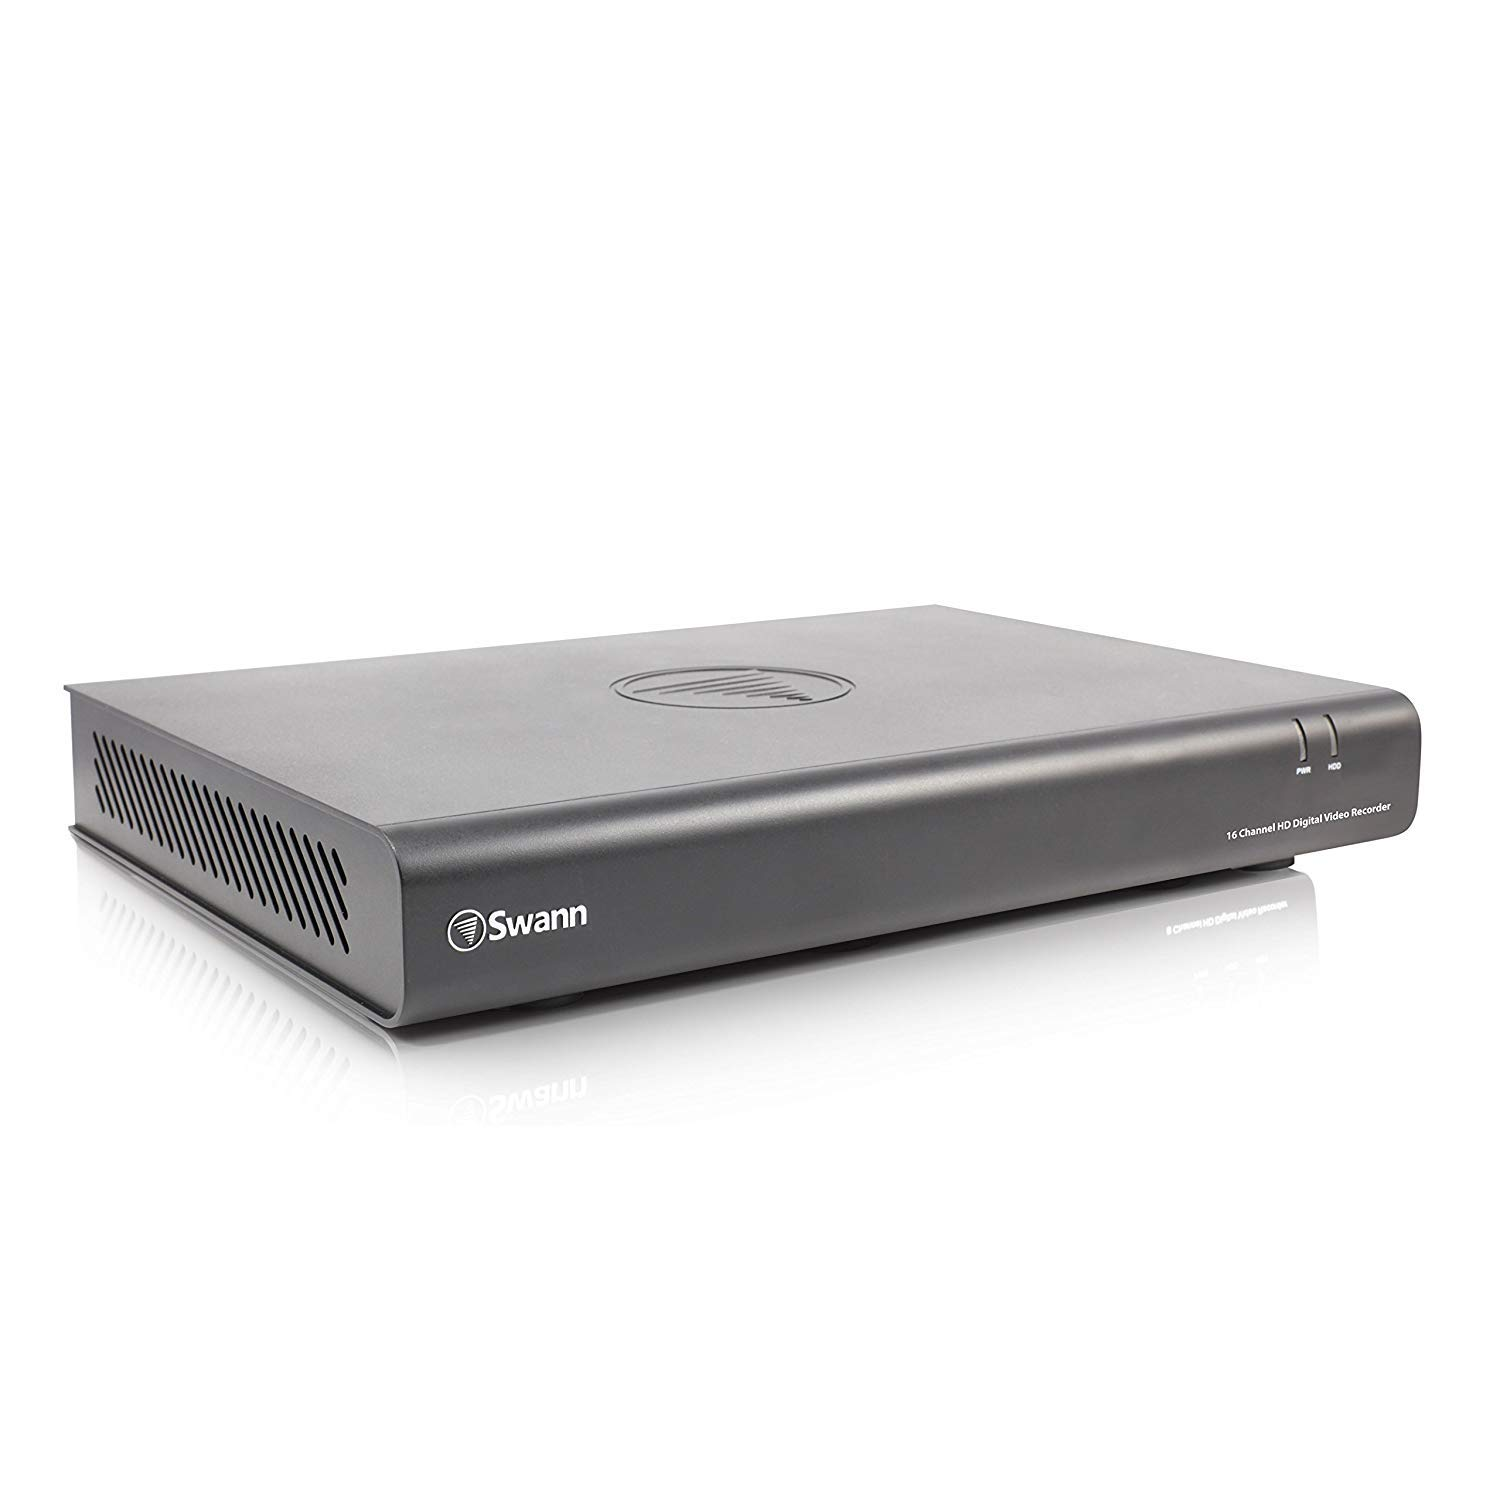 Swann DVR16-4580 16 Channel 1080p Digital Video Recorder CCTV Security 2TB HDD with Smartphone Viewing SRDVR-164580HV-UK